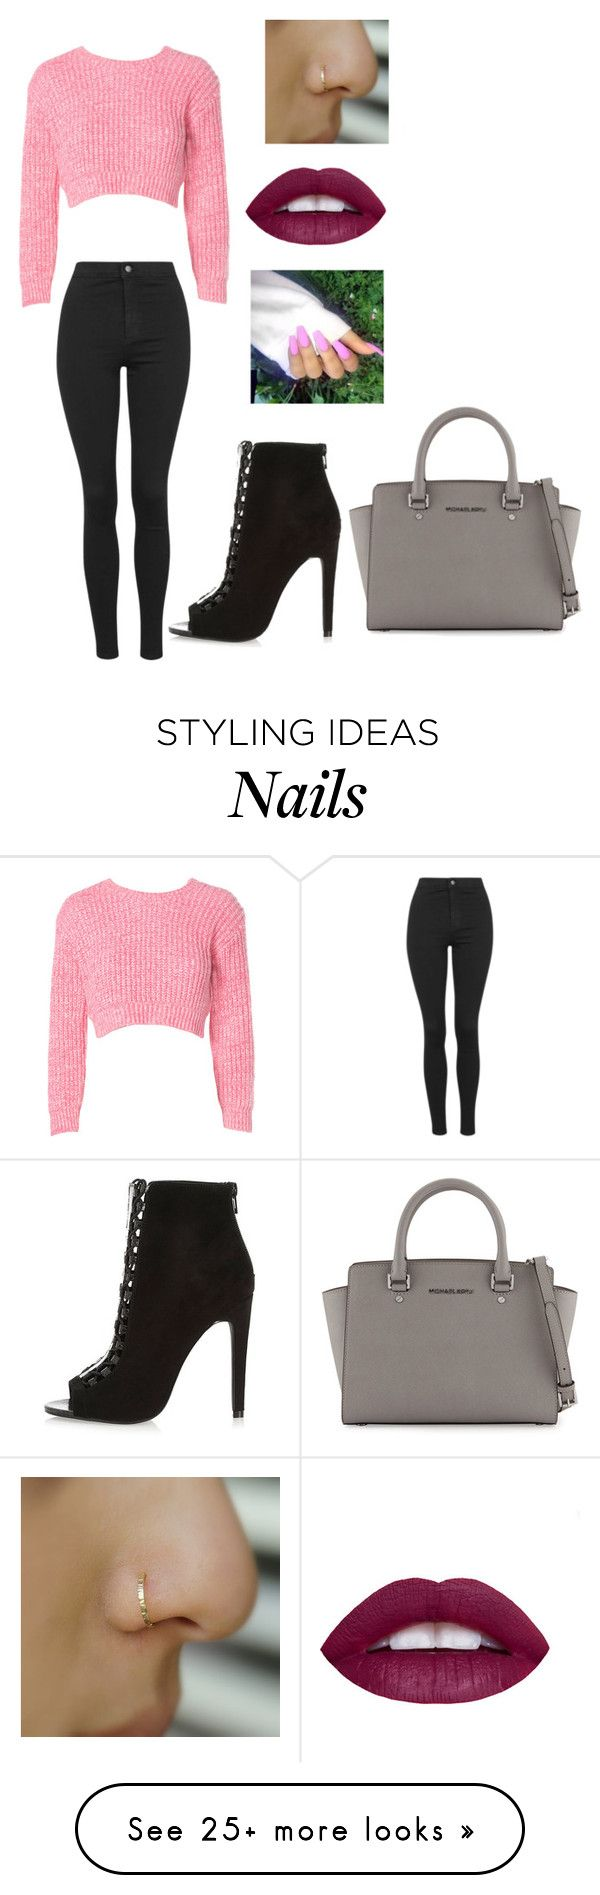 """Untitled #2400"" by slayyeettia on Polyvore featuring River Island, Topshop, MICHAEL Michael Kors, women's clothing, women, female, woman, misses and juniors"